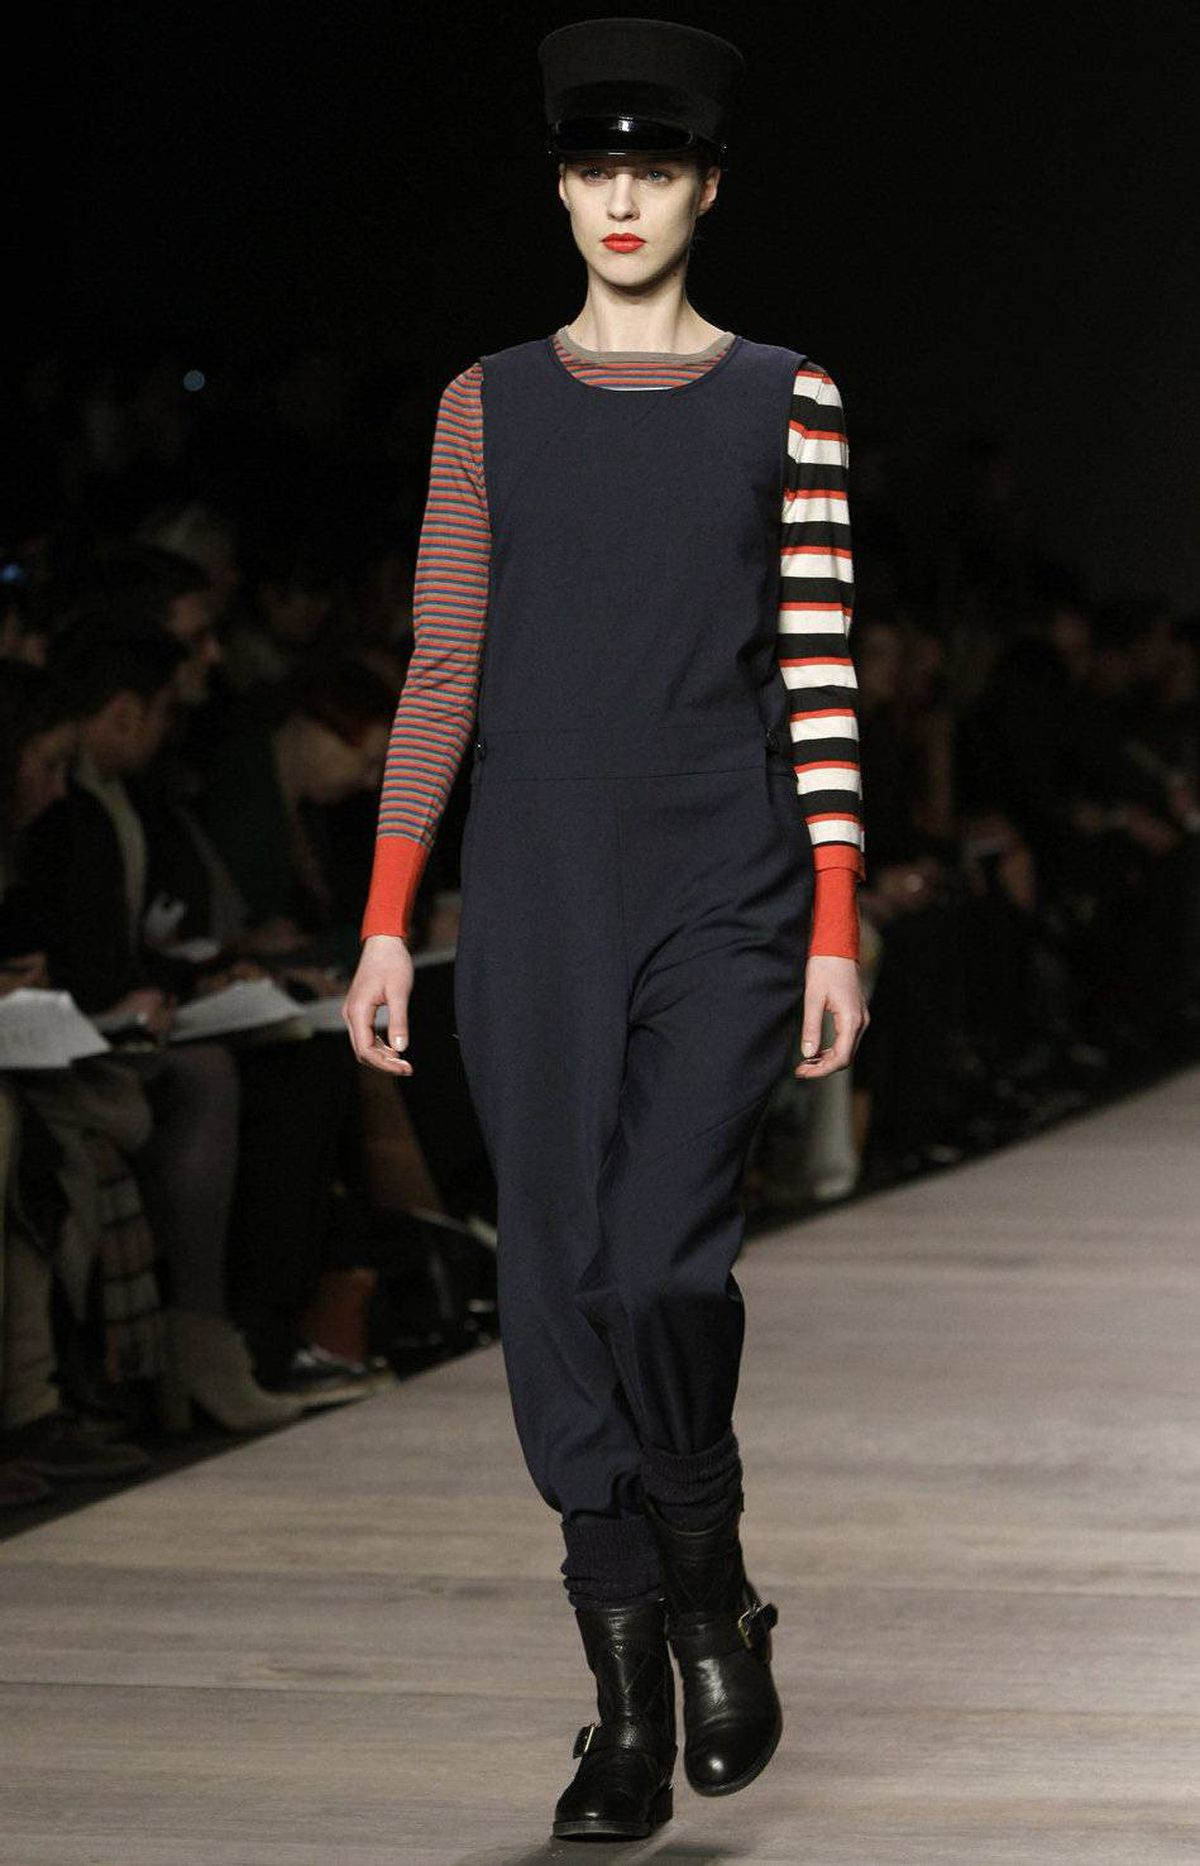 More subversive, in fact, is this navy onesie and the mismatched stripe sleeves.